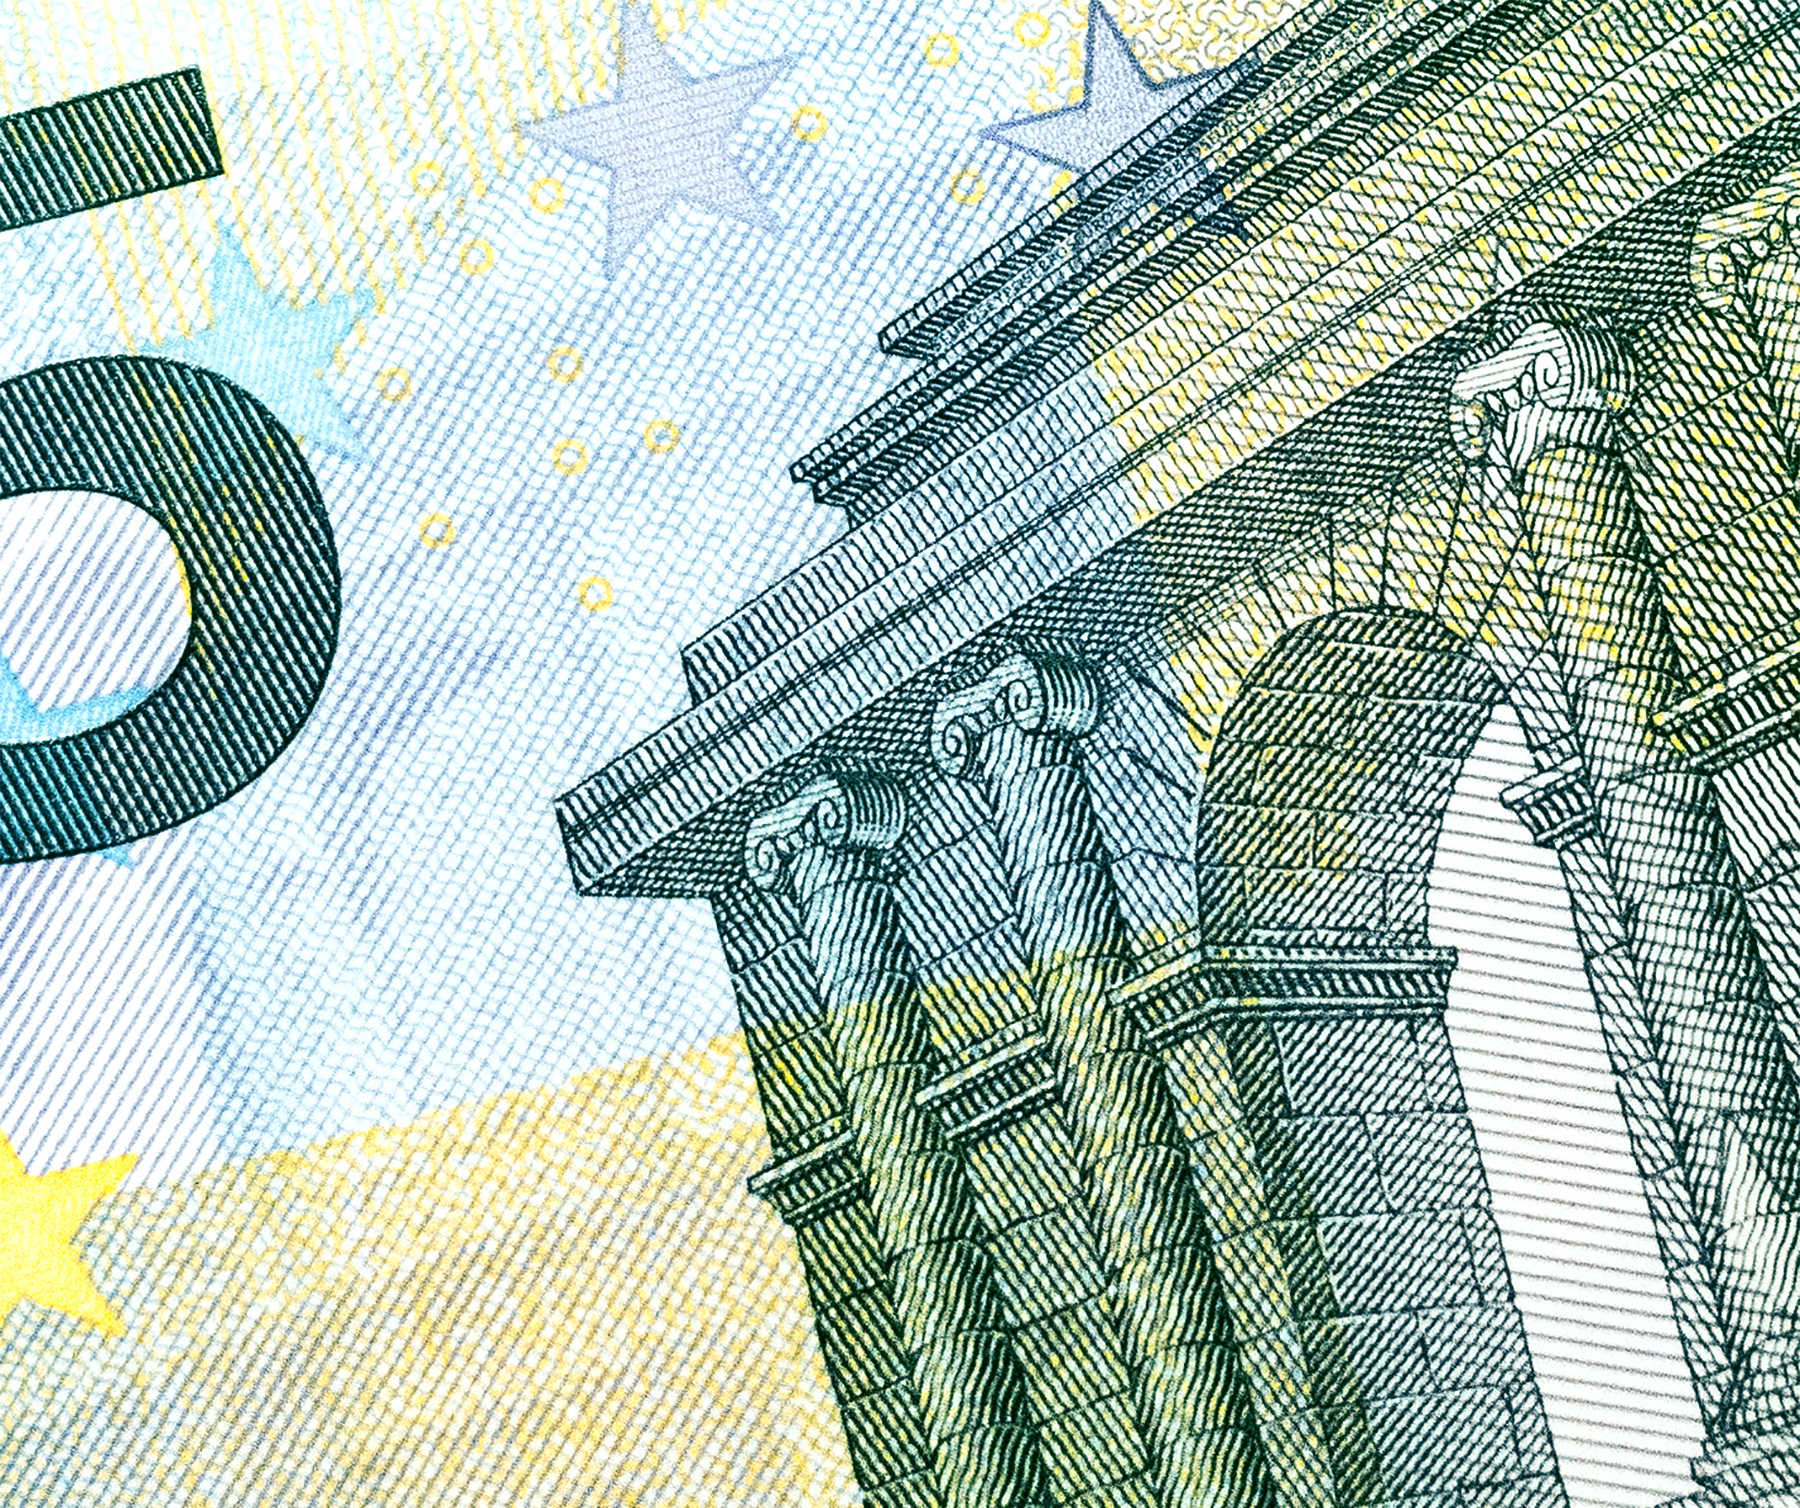 Euro-Banknote